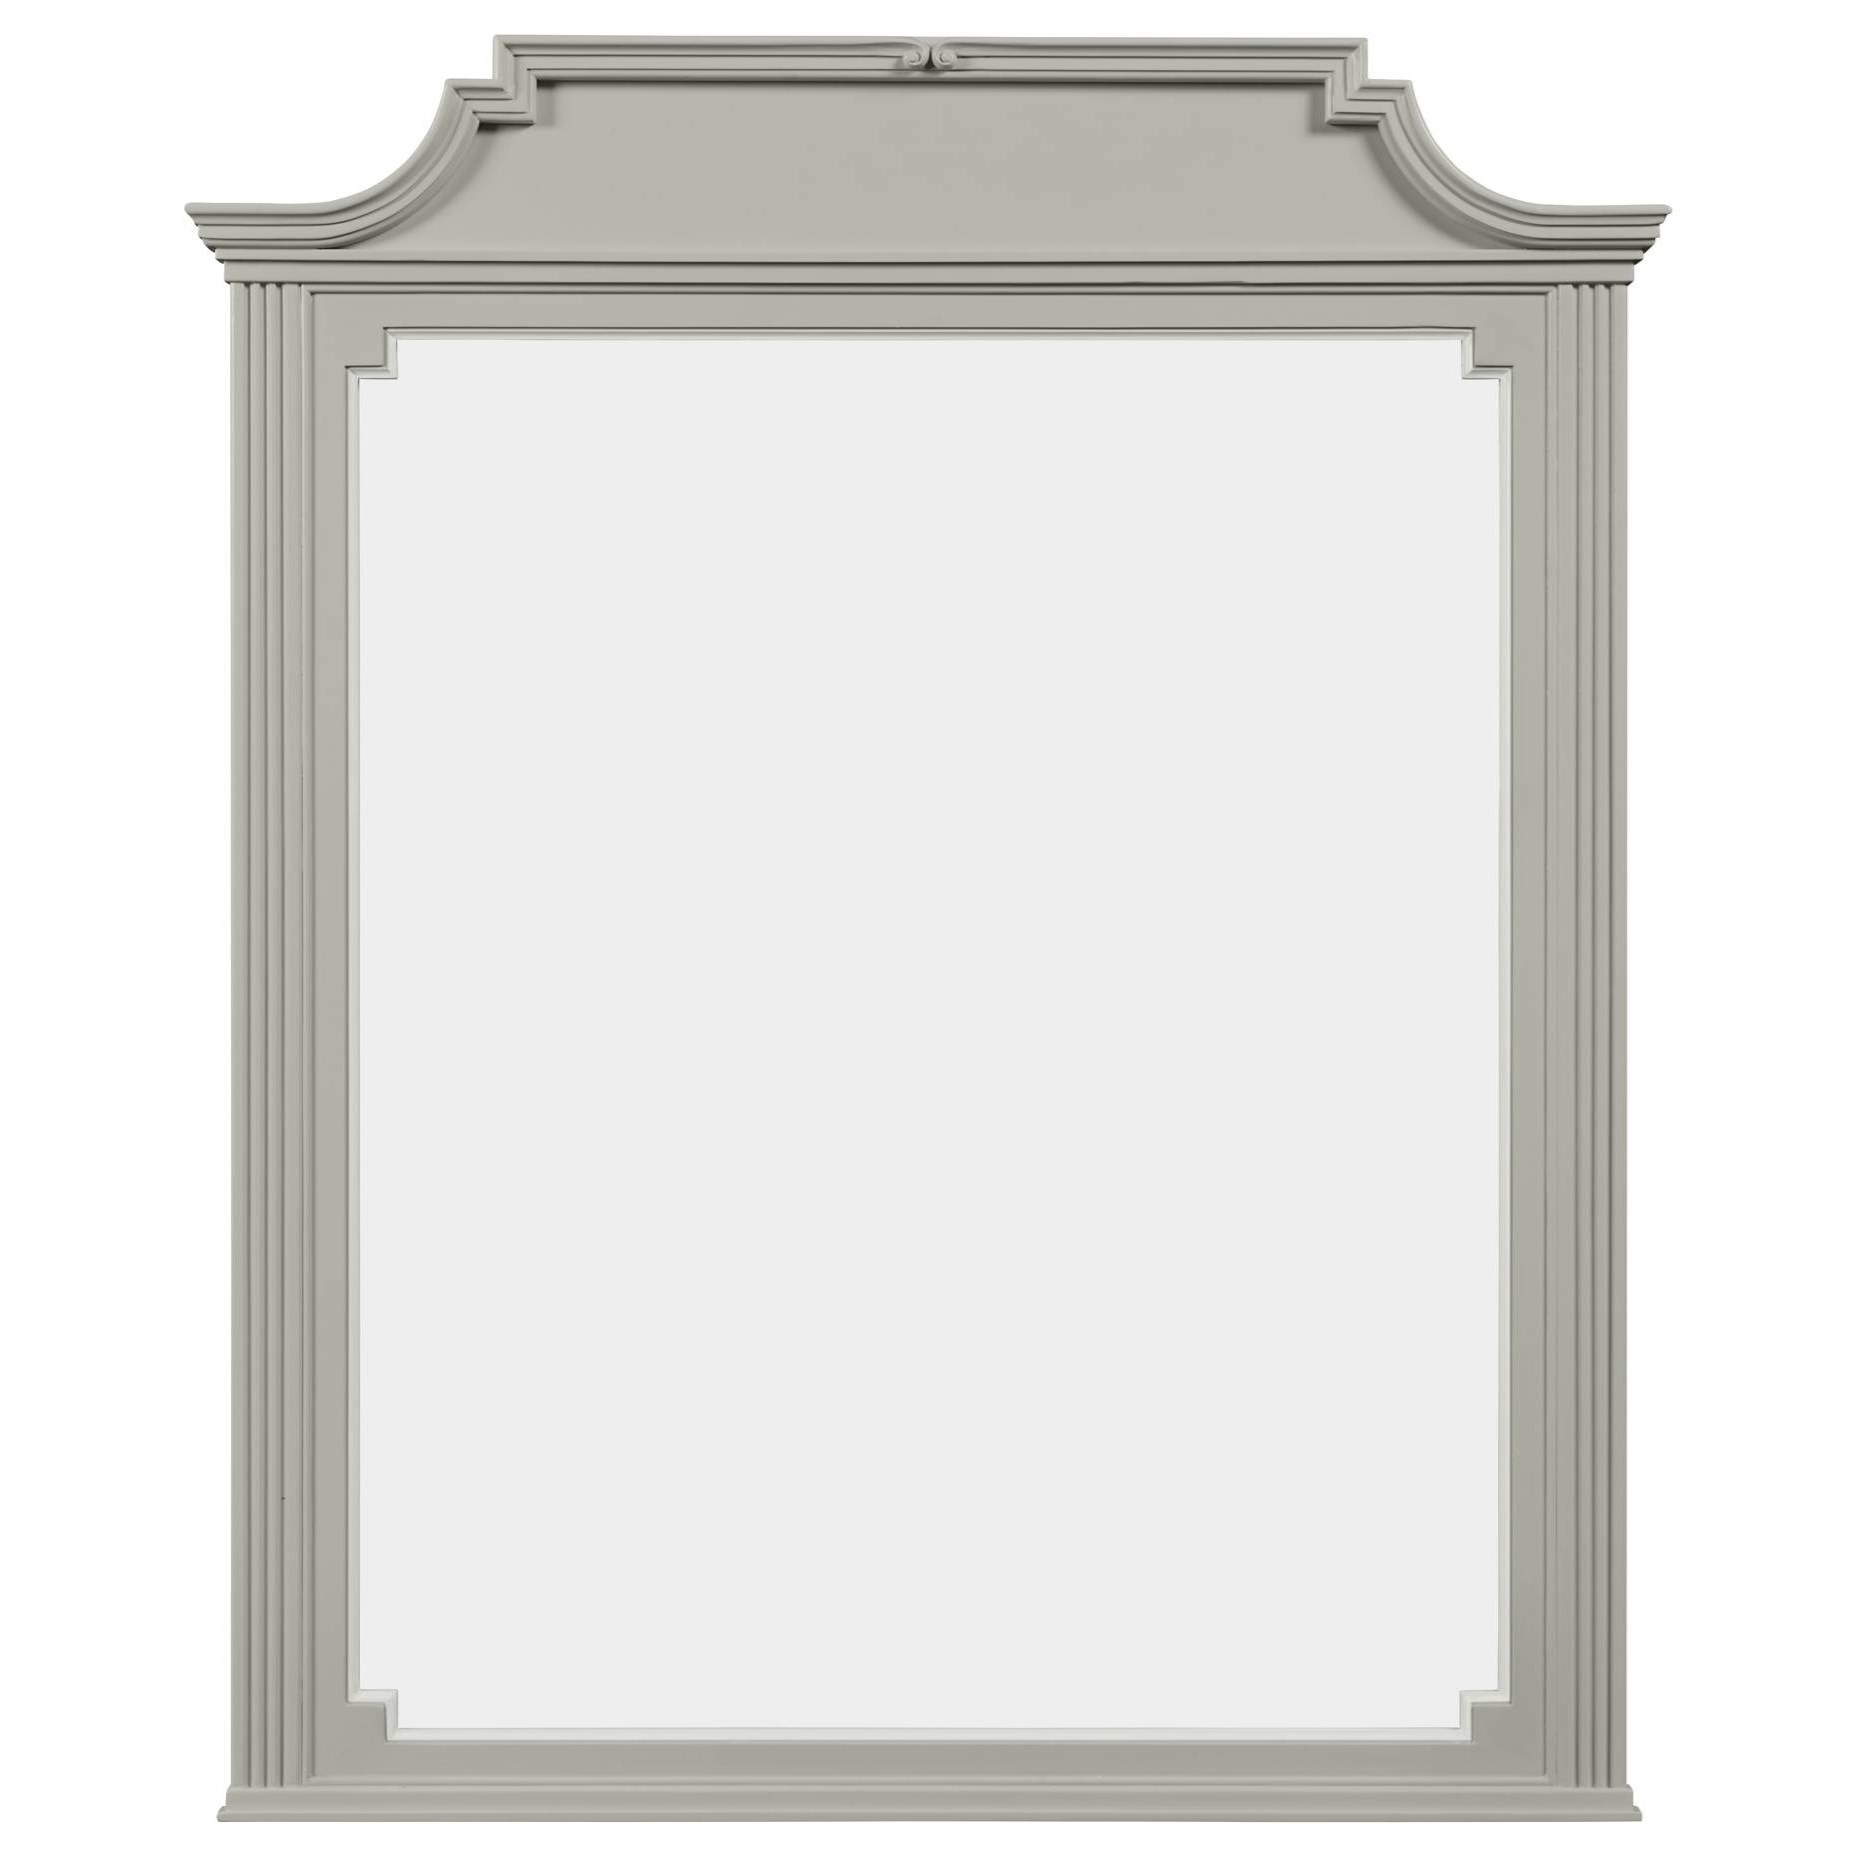 Stone & Leigh Furniture Clementine Court Mirror - Item Number: 537-53-30